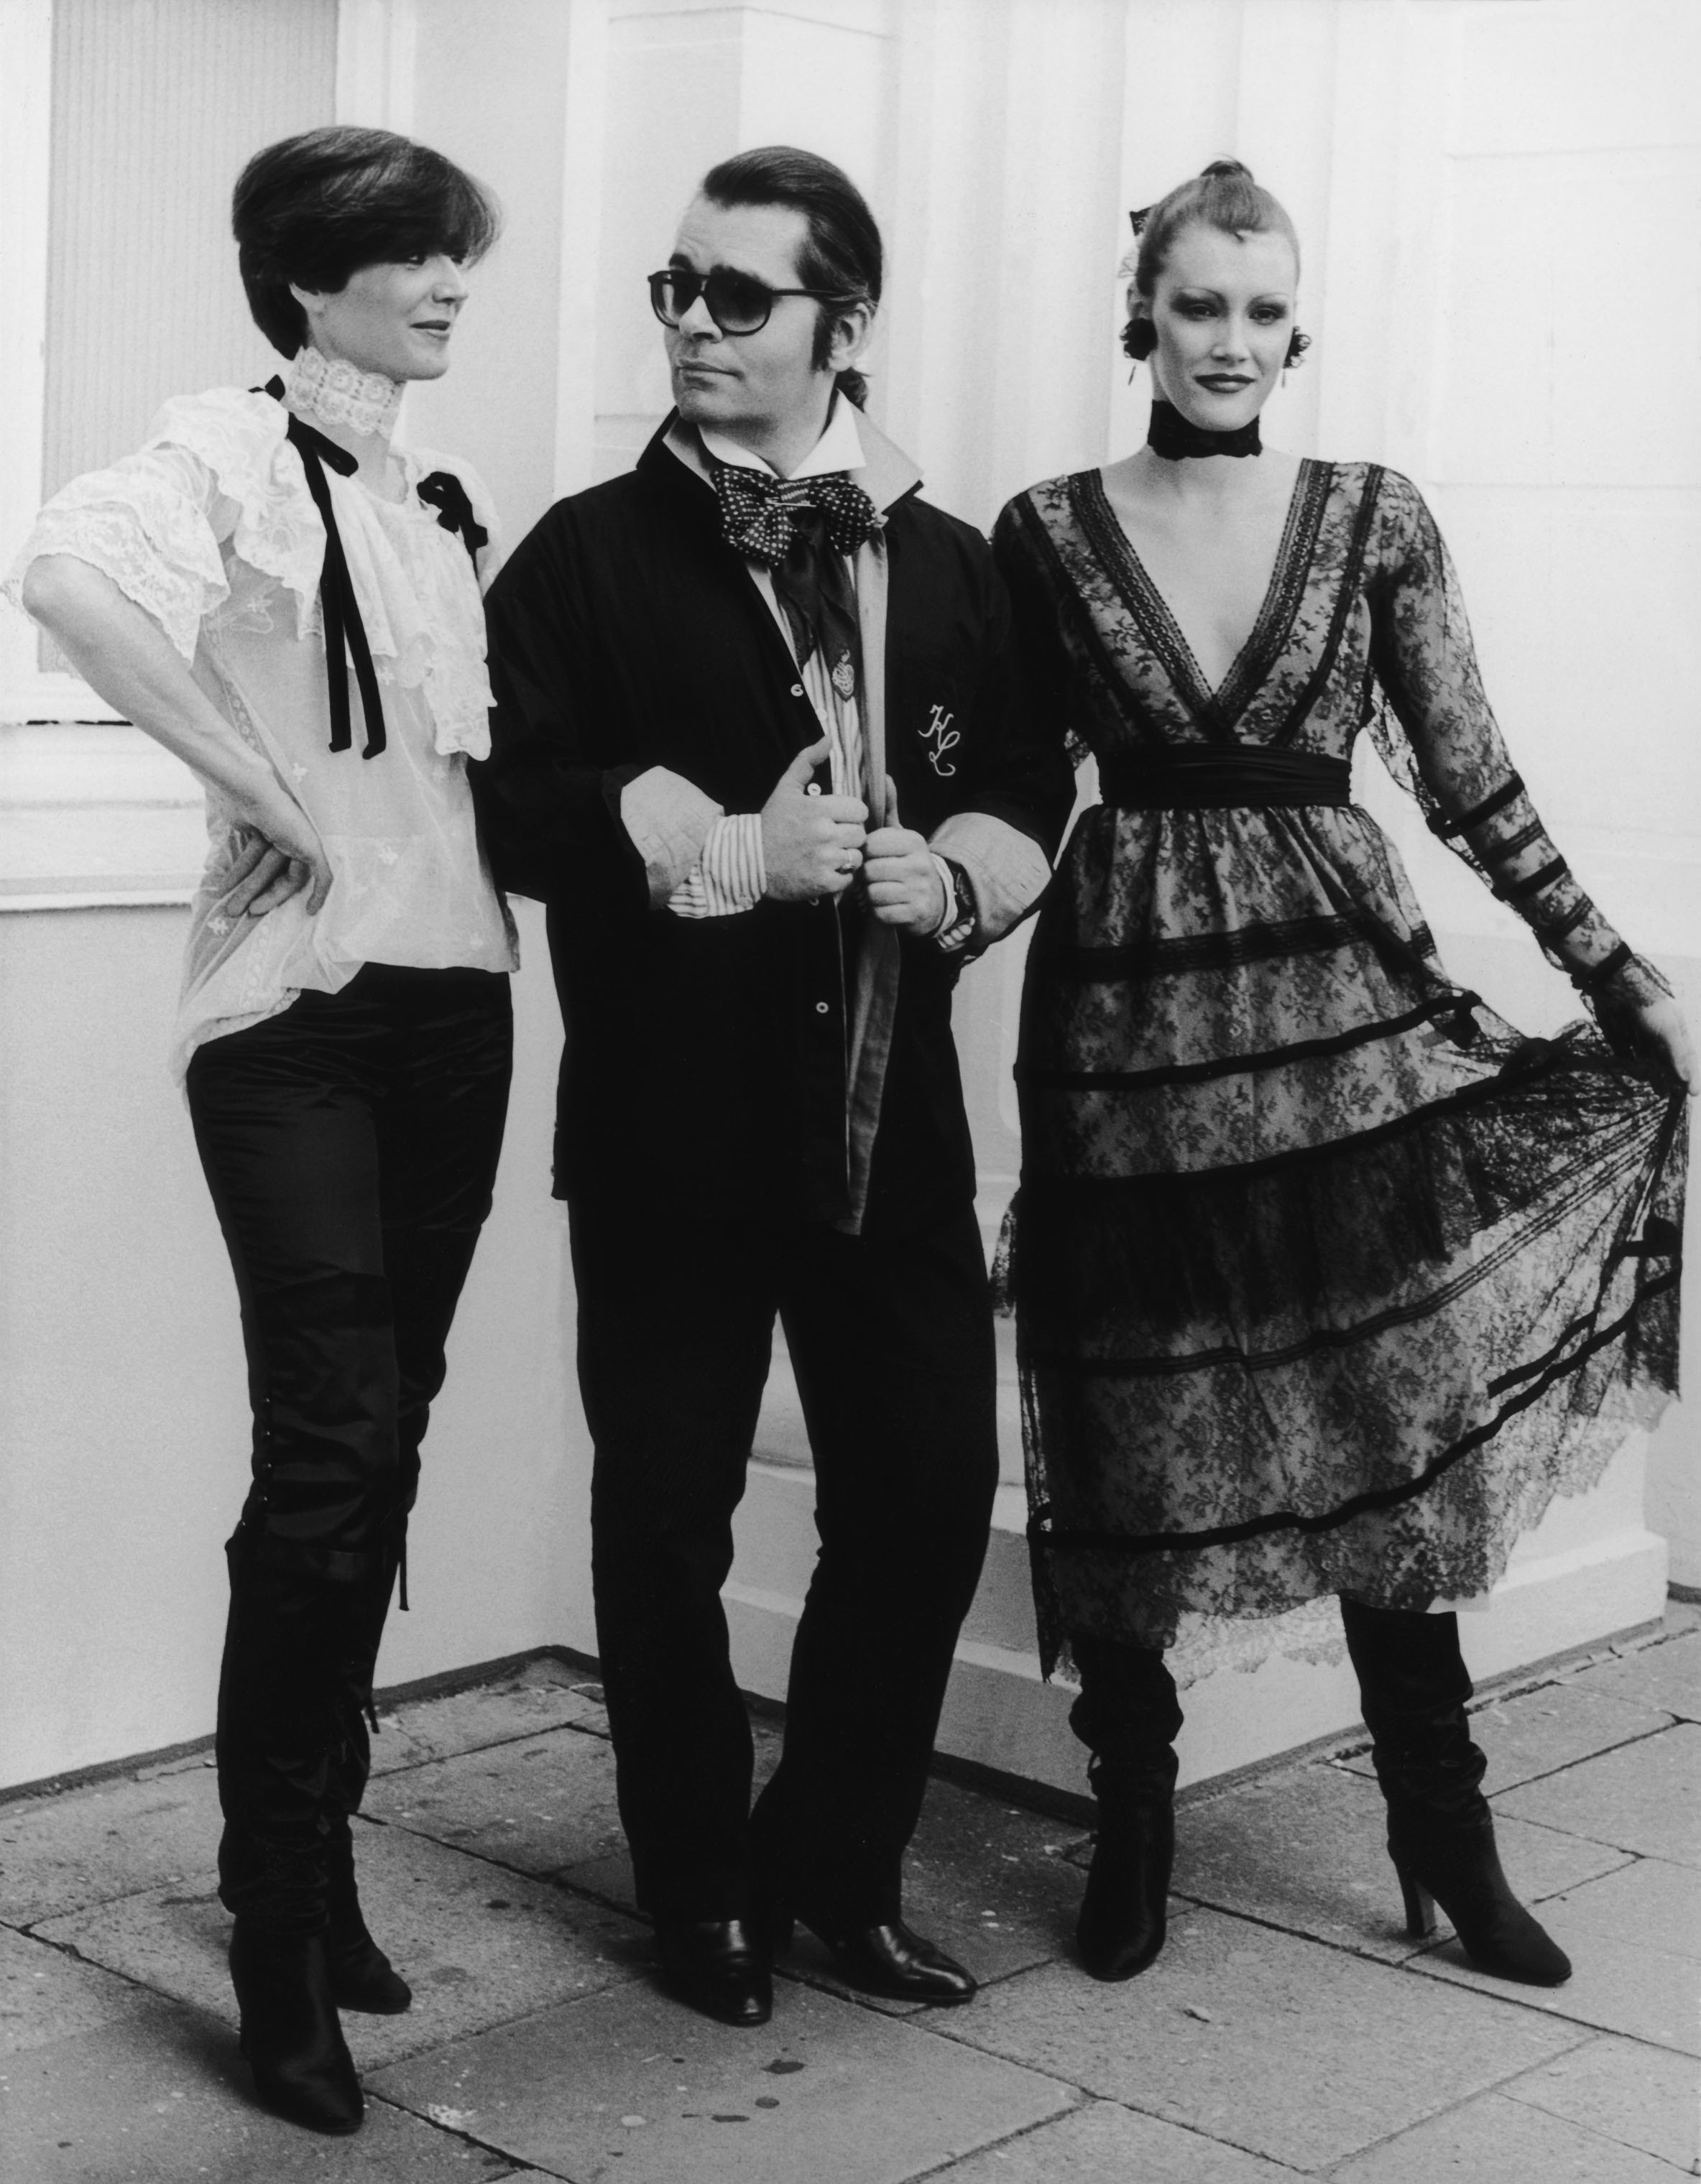 German fashion designer Karl Lagerfeld with two models, circa 1984.